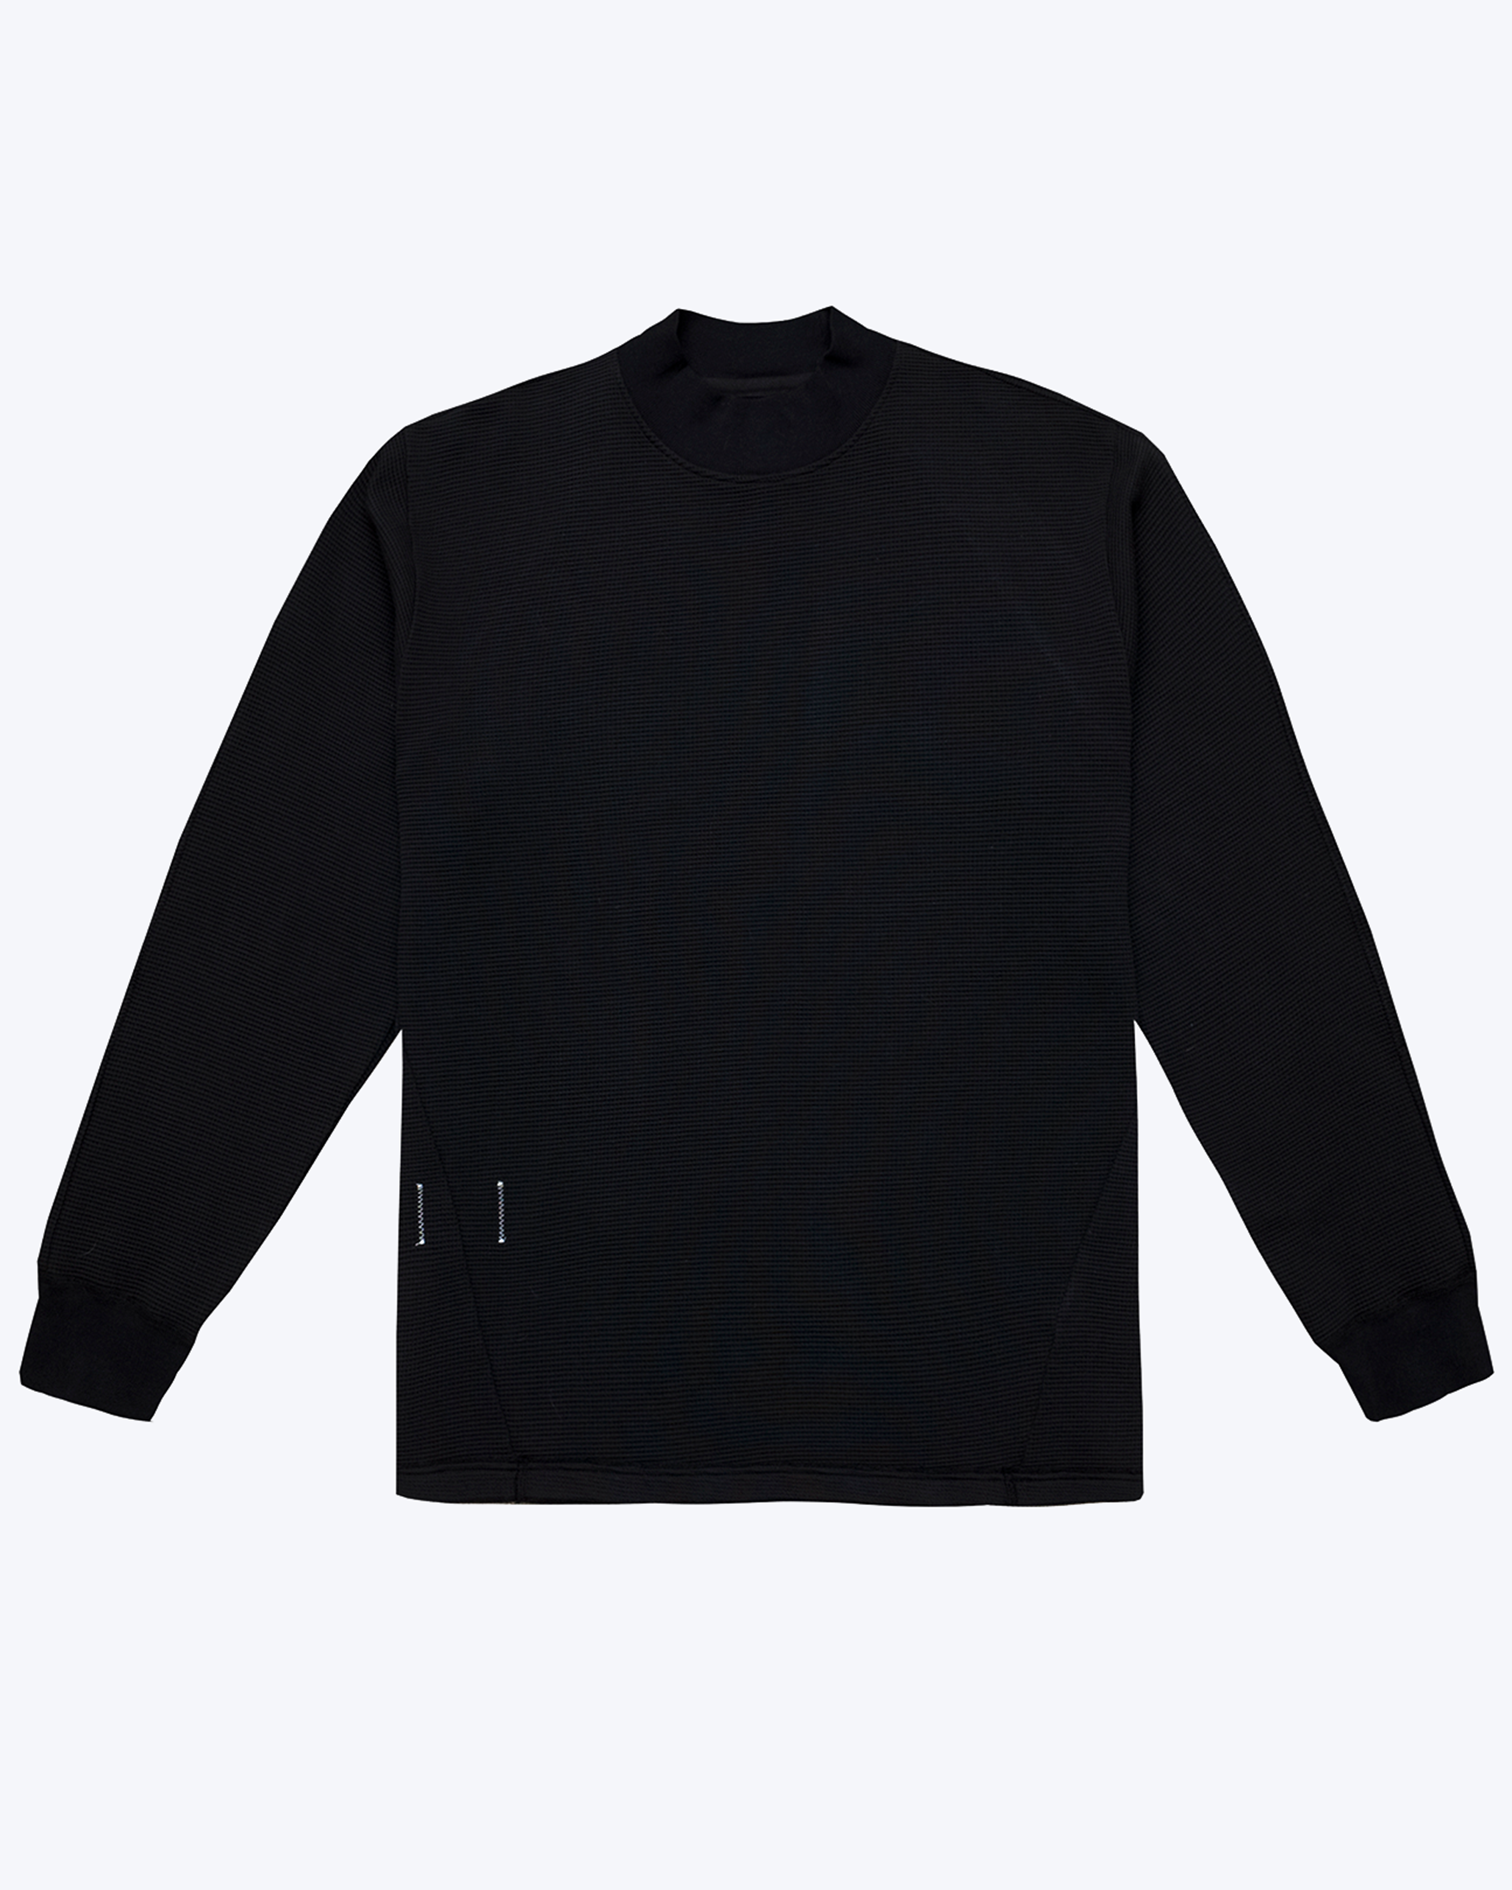 FLATBACK THERMAL LONG SLEEVE